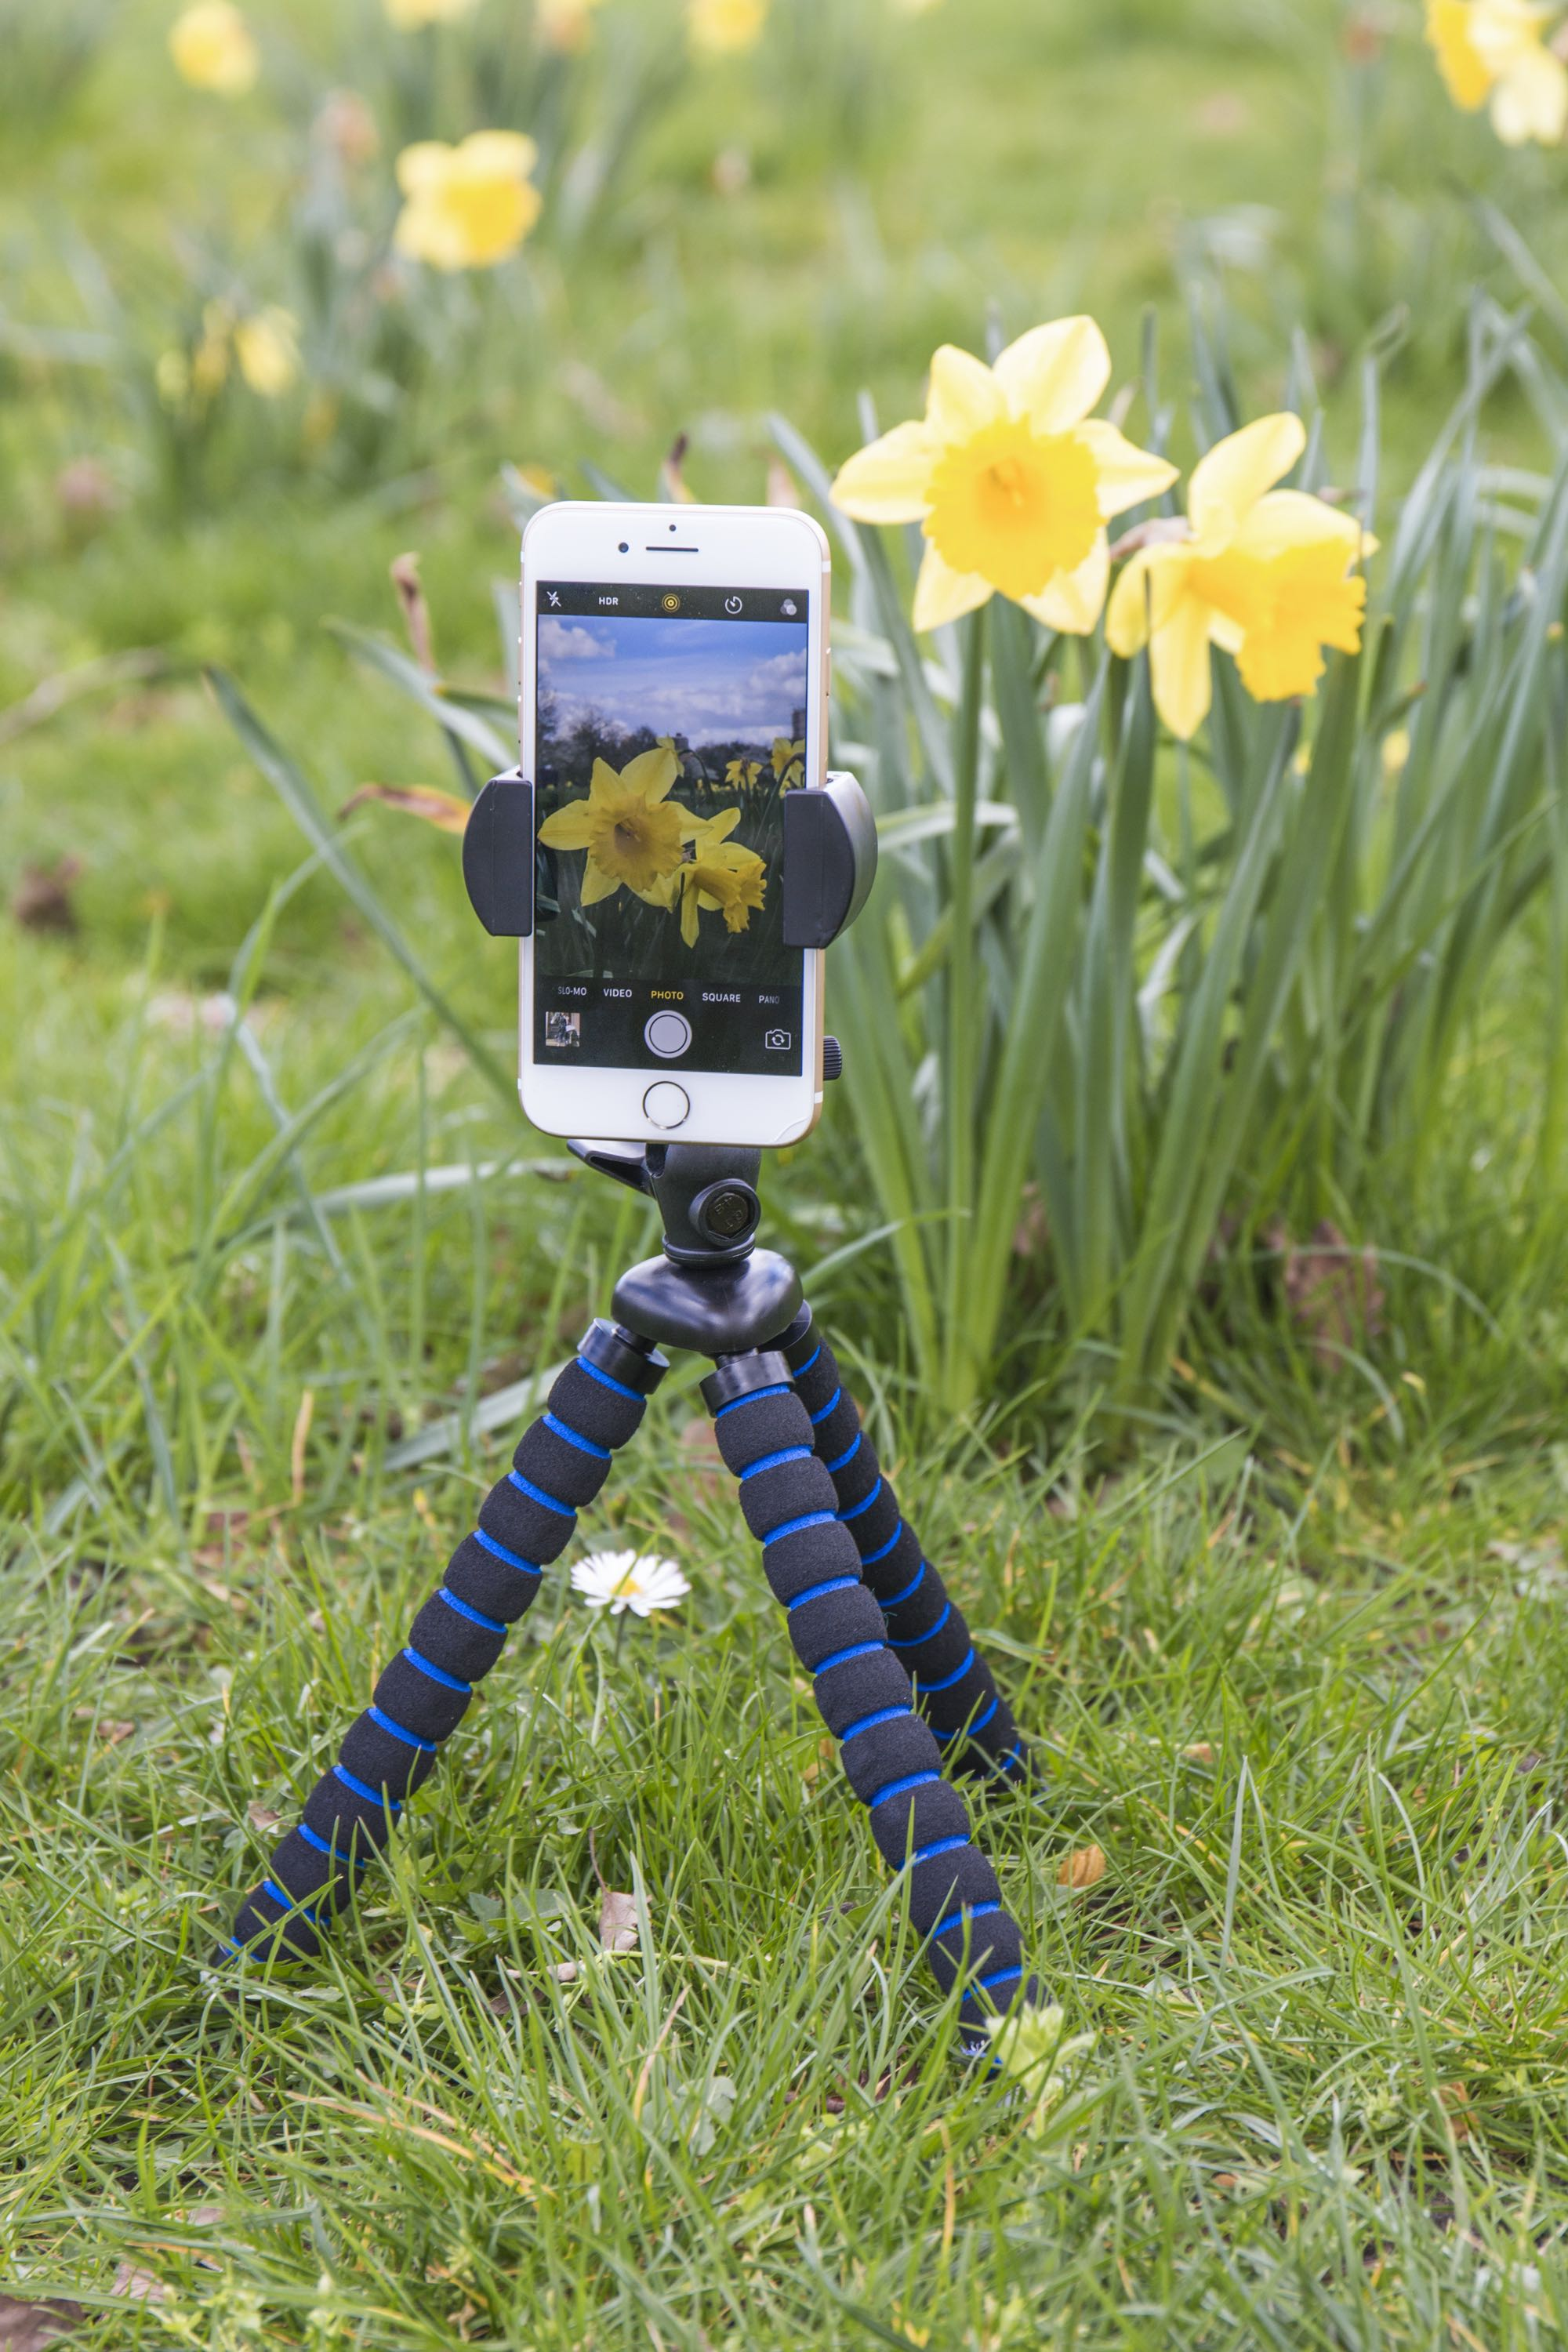 Arkon Tripod Mount review